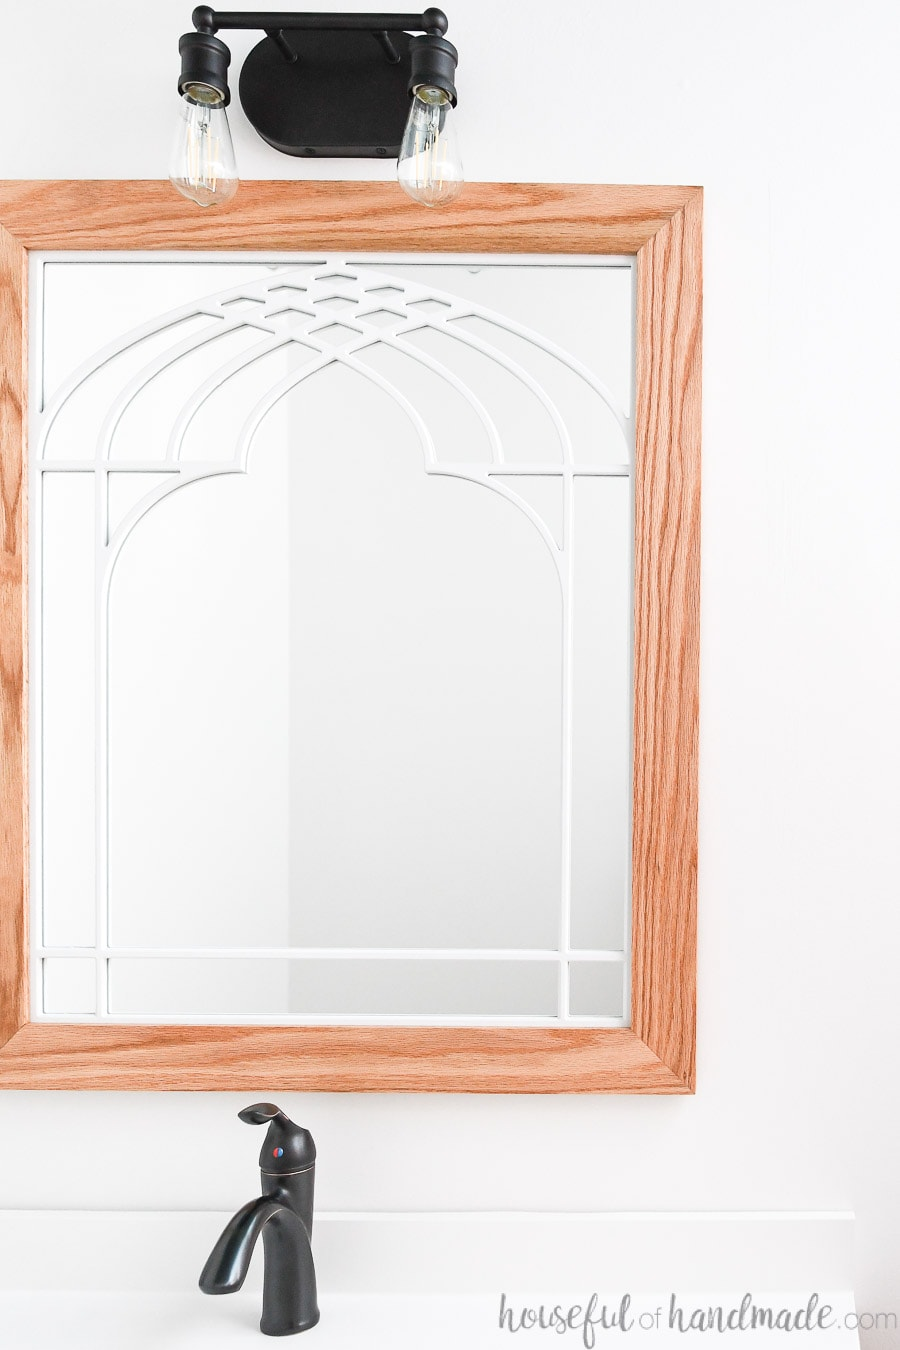 Bathroom mirror that looks like a window with cathedral arch in the center and wood frame.